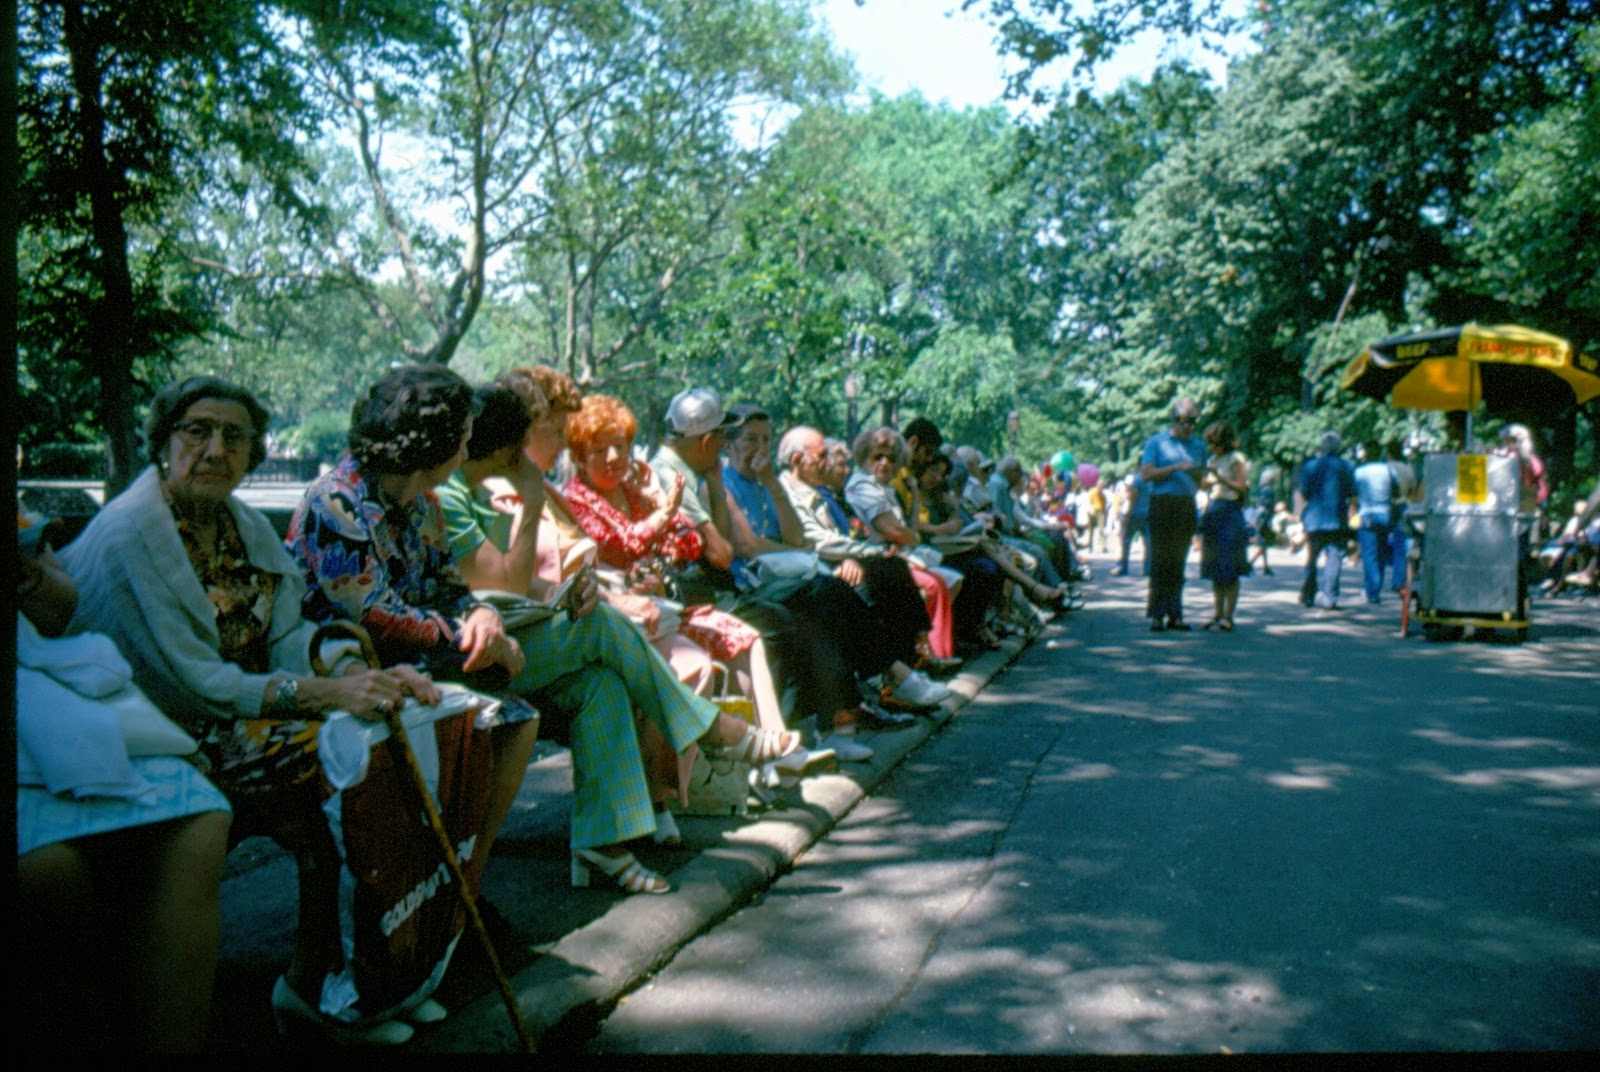 1925 Rolls Royce Phantom >> 14 Colorful Photos Showing Everyday Life in Central Park, New York in the 1970s ~ vintage everyday